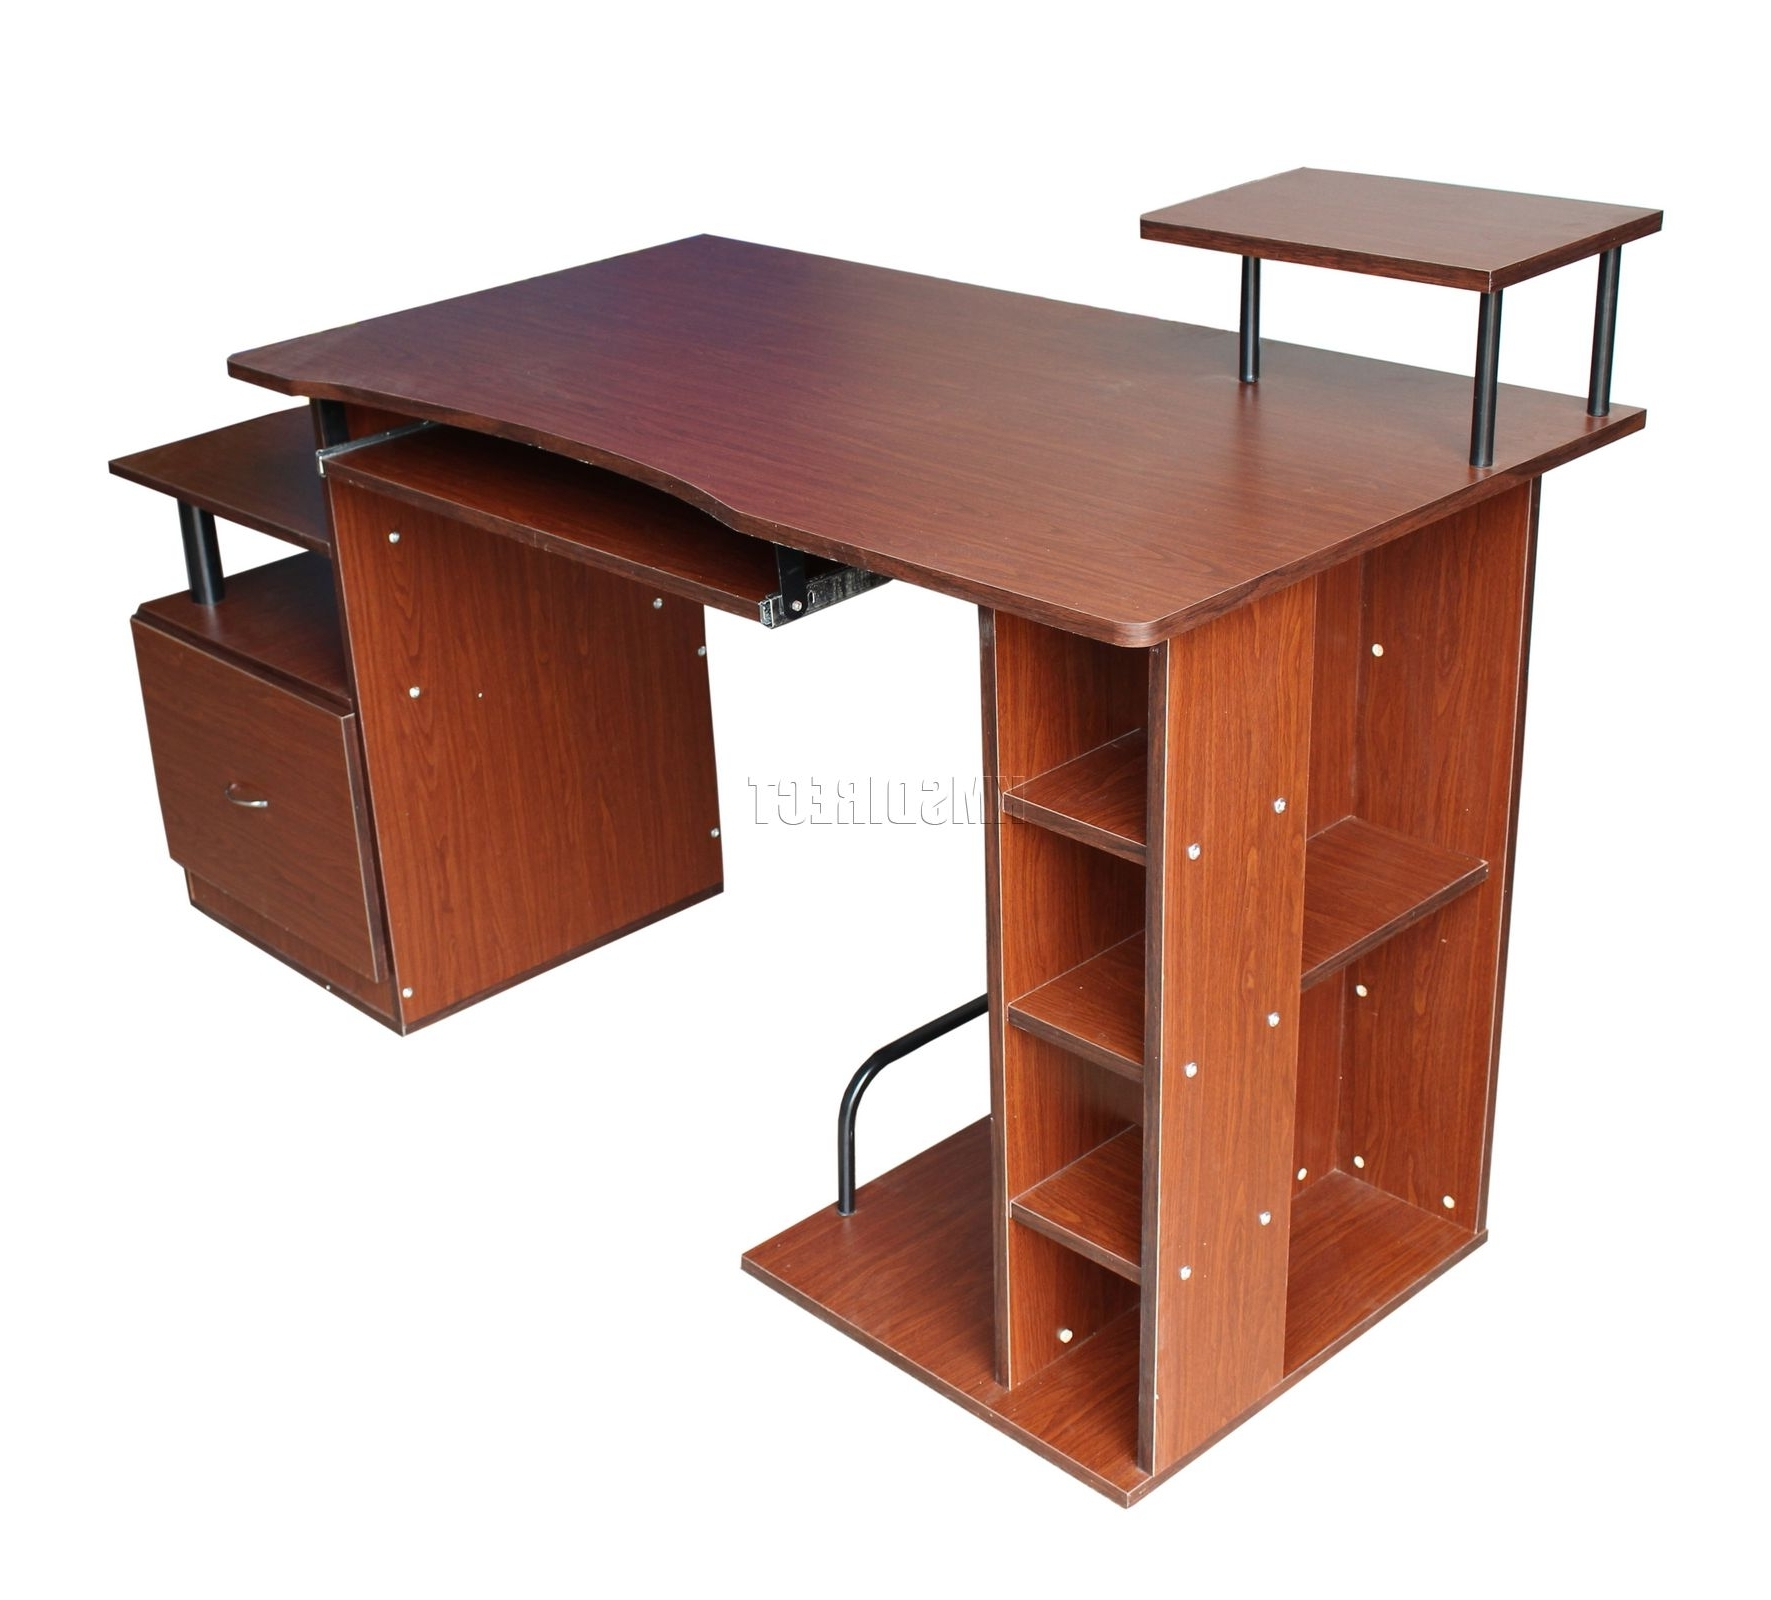 Perfect Style of Office Depot Desks for Your Workspace Ideas: Office Depot Desks | Computer Desk Office Depot | Office Depot Corner Desk